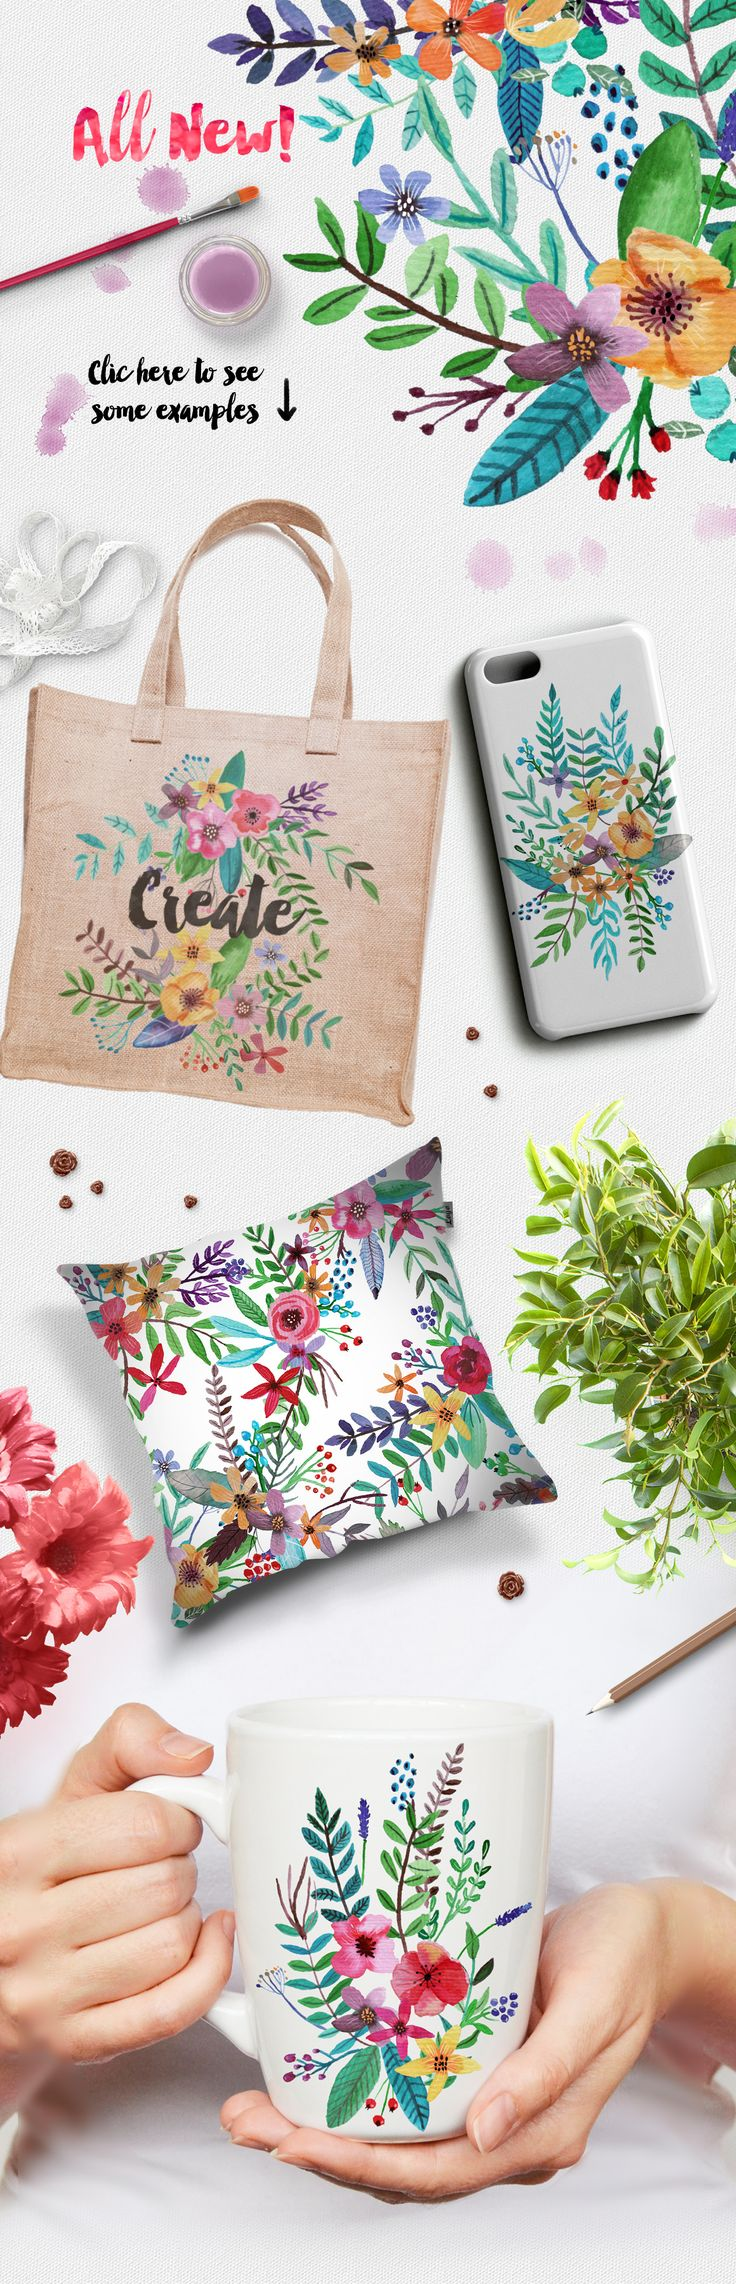 Flowertopia hand drawn watercolor flowers:  Perfect for greetings, branding, websites, digital media, weddings, apparel, packaging, invites, merchandise designs, advertising, graphic design and much more.